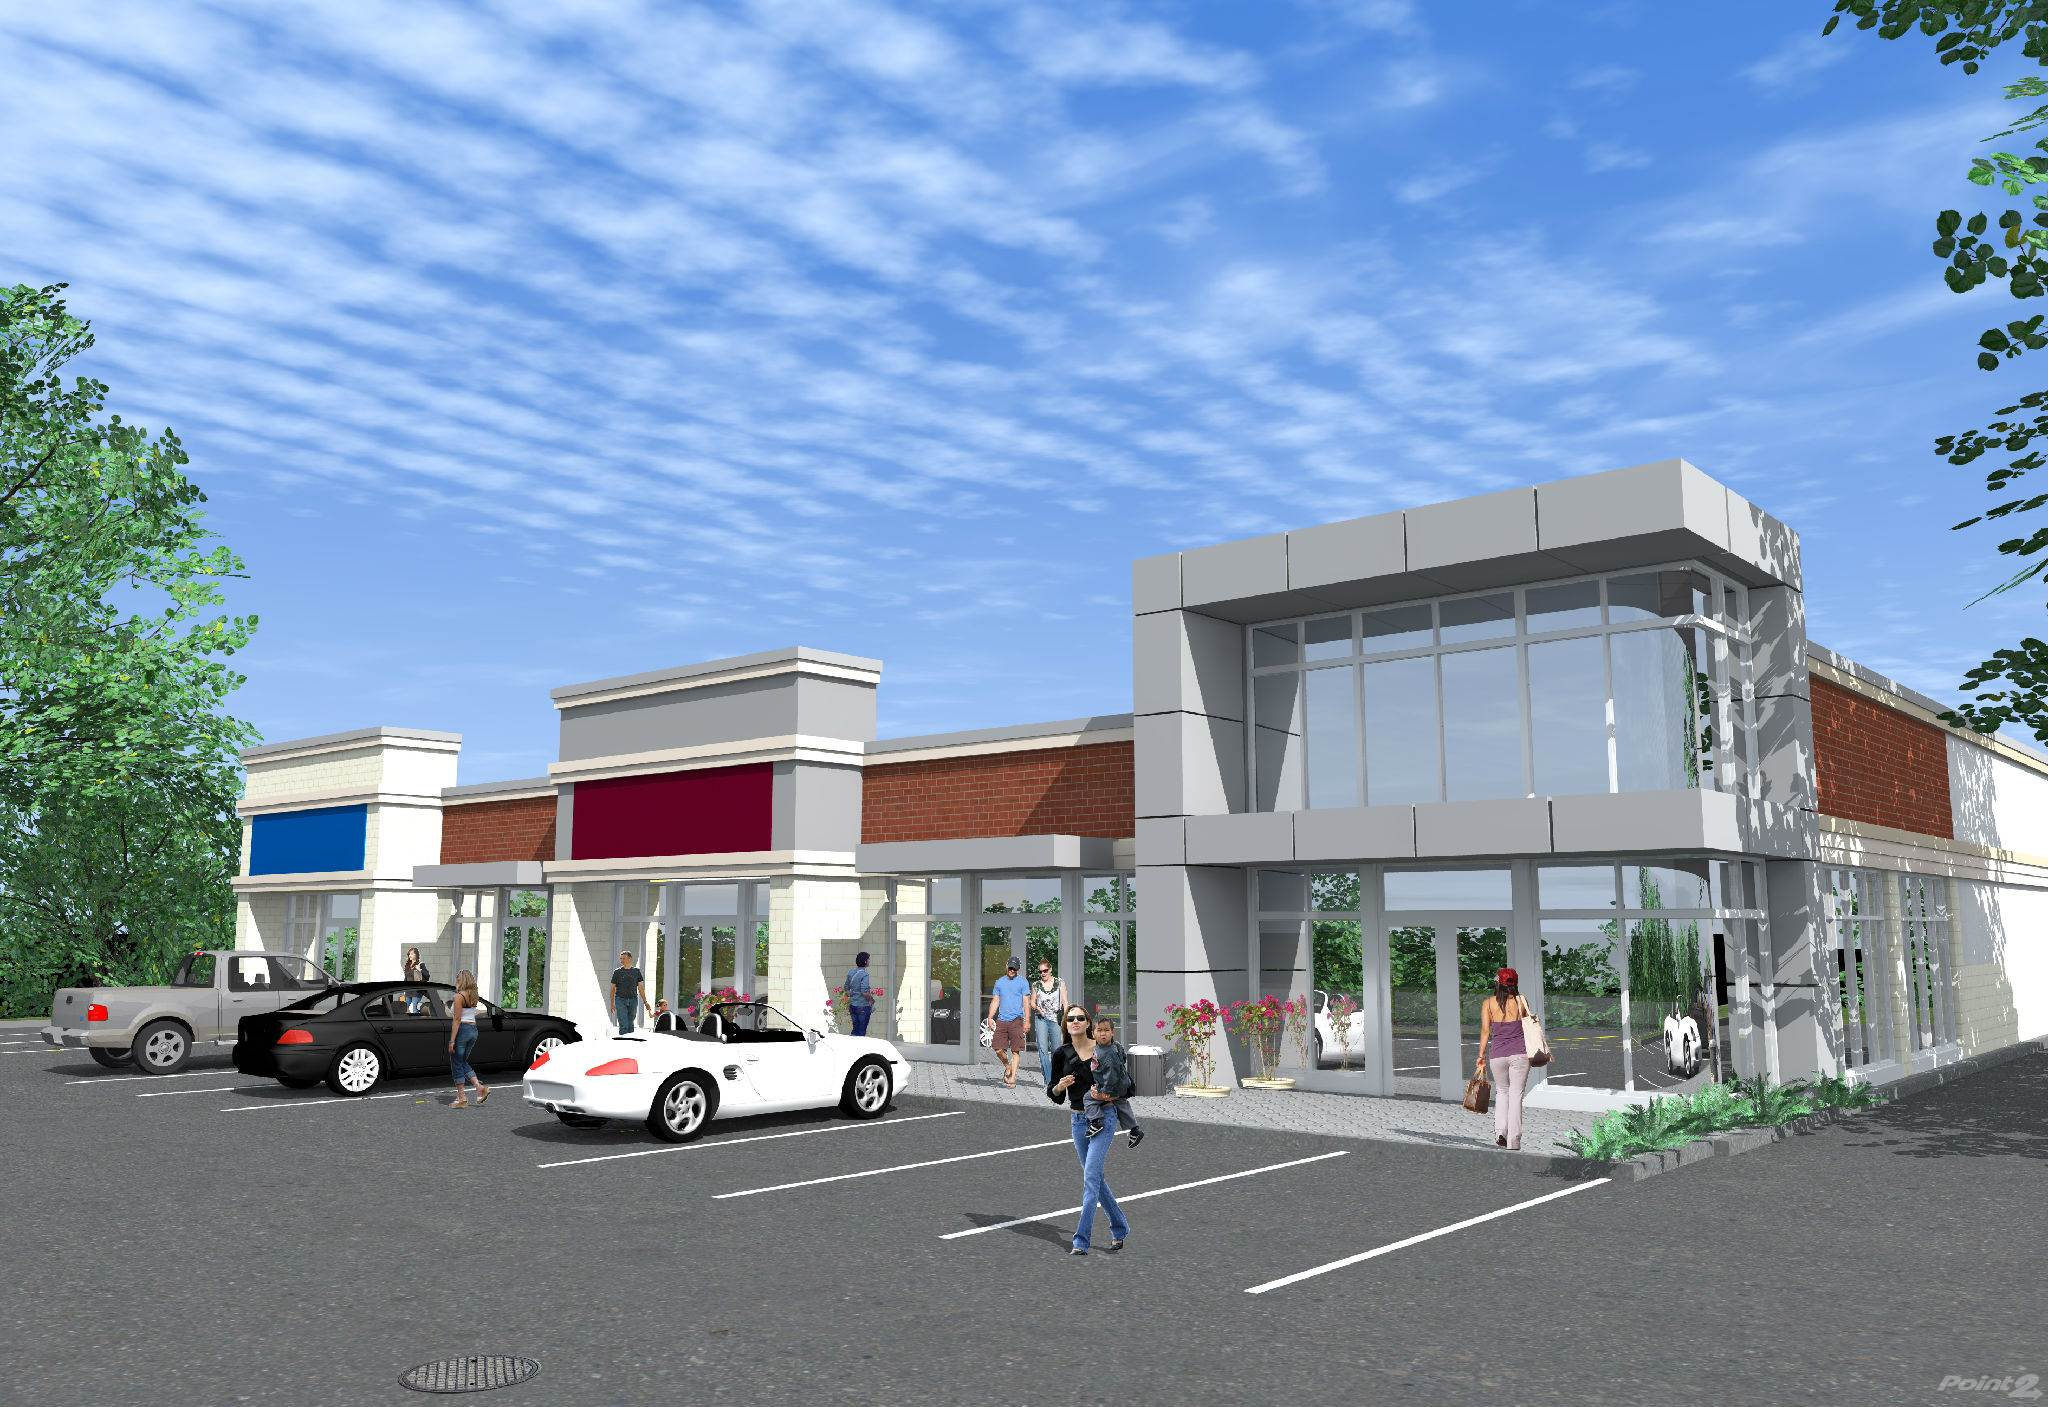 Commercial for lease in 140 RUE PRINCIPALE, STE-DOROTHE, LAVAL, QUEBEC, CANADA, Laval, Quebec ,H7X 3V2  , Canada